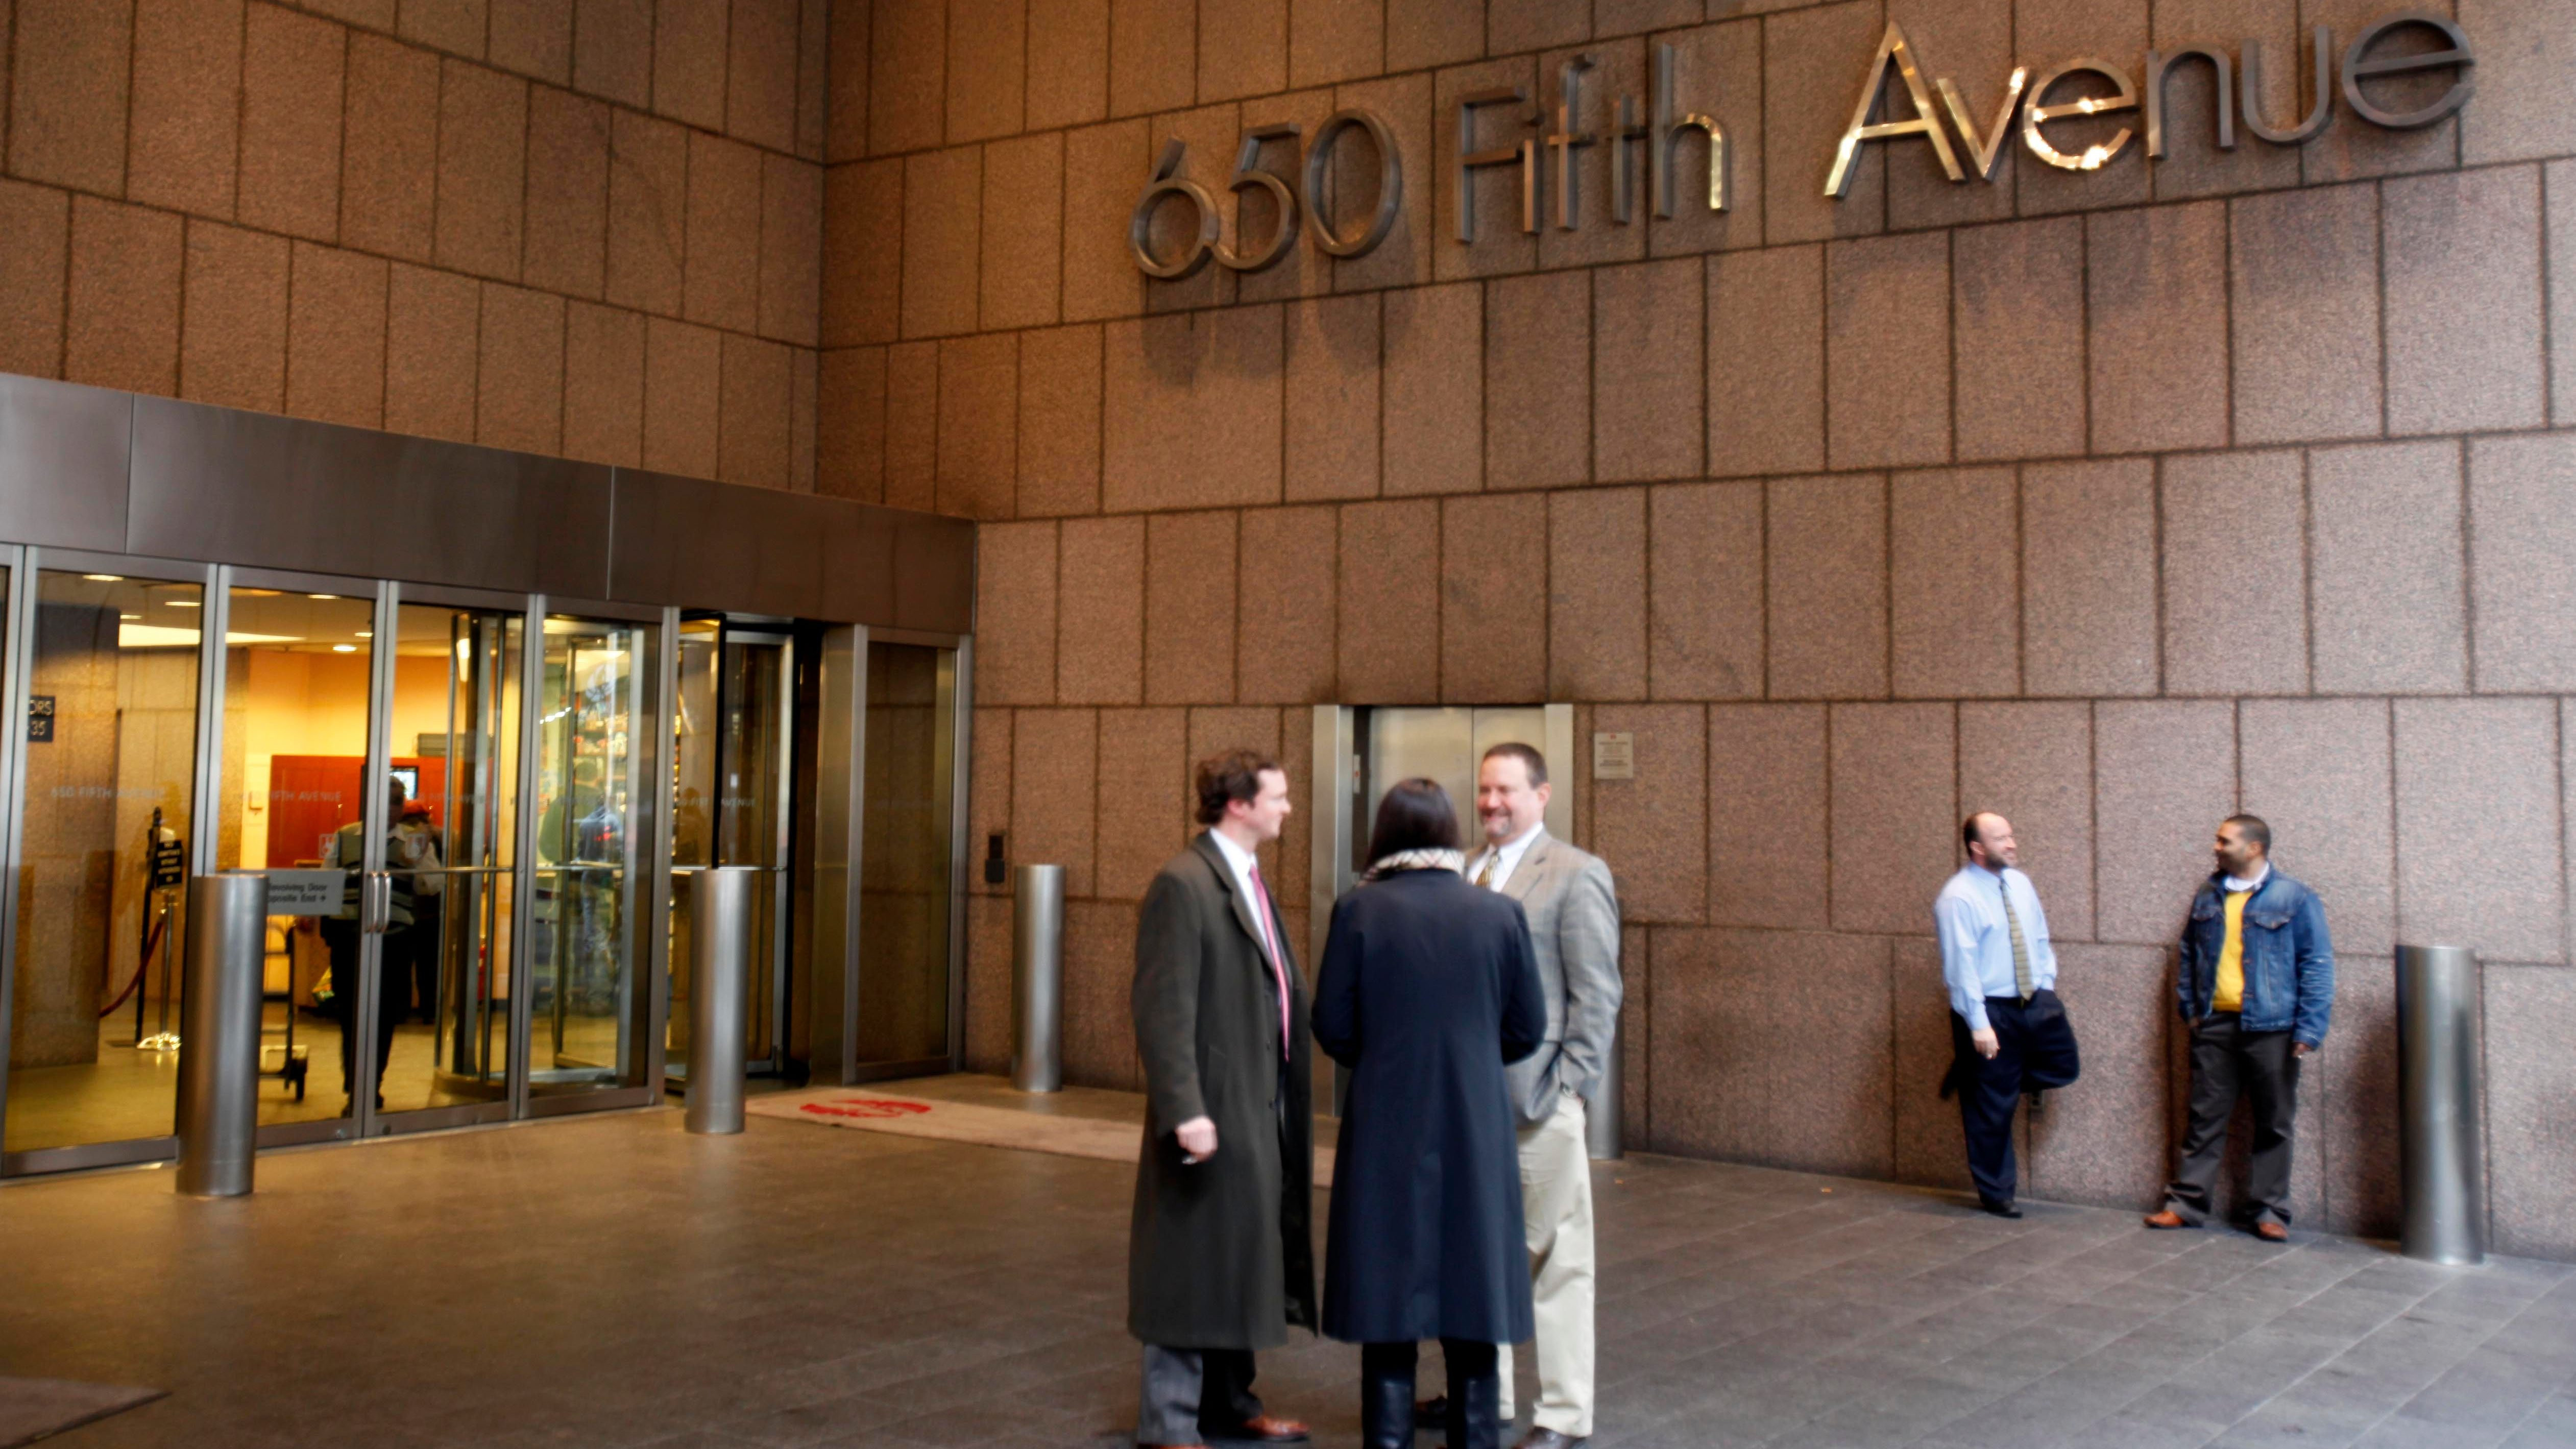 People stand near an entrance to 650 5th Ave in New York on Thursday, Nov. 12, 2009. Federal prosecutors Thursday took steps to seize four U.S. mosques and this Fifth Avenue skyscraper owned by a nonprofit Muslim organization long suspected of being under Iranian government control. (AP Photo/Seth Wenig)